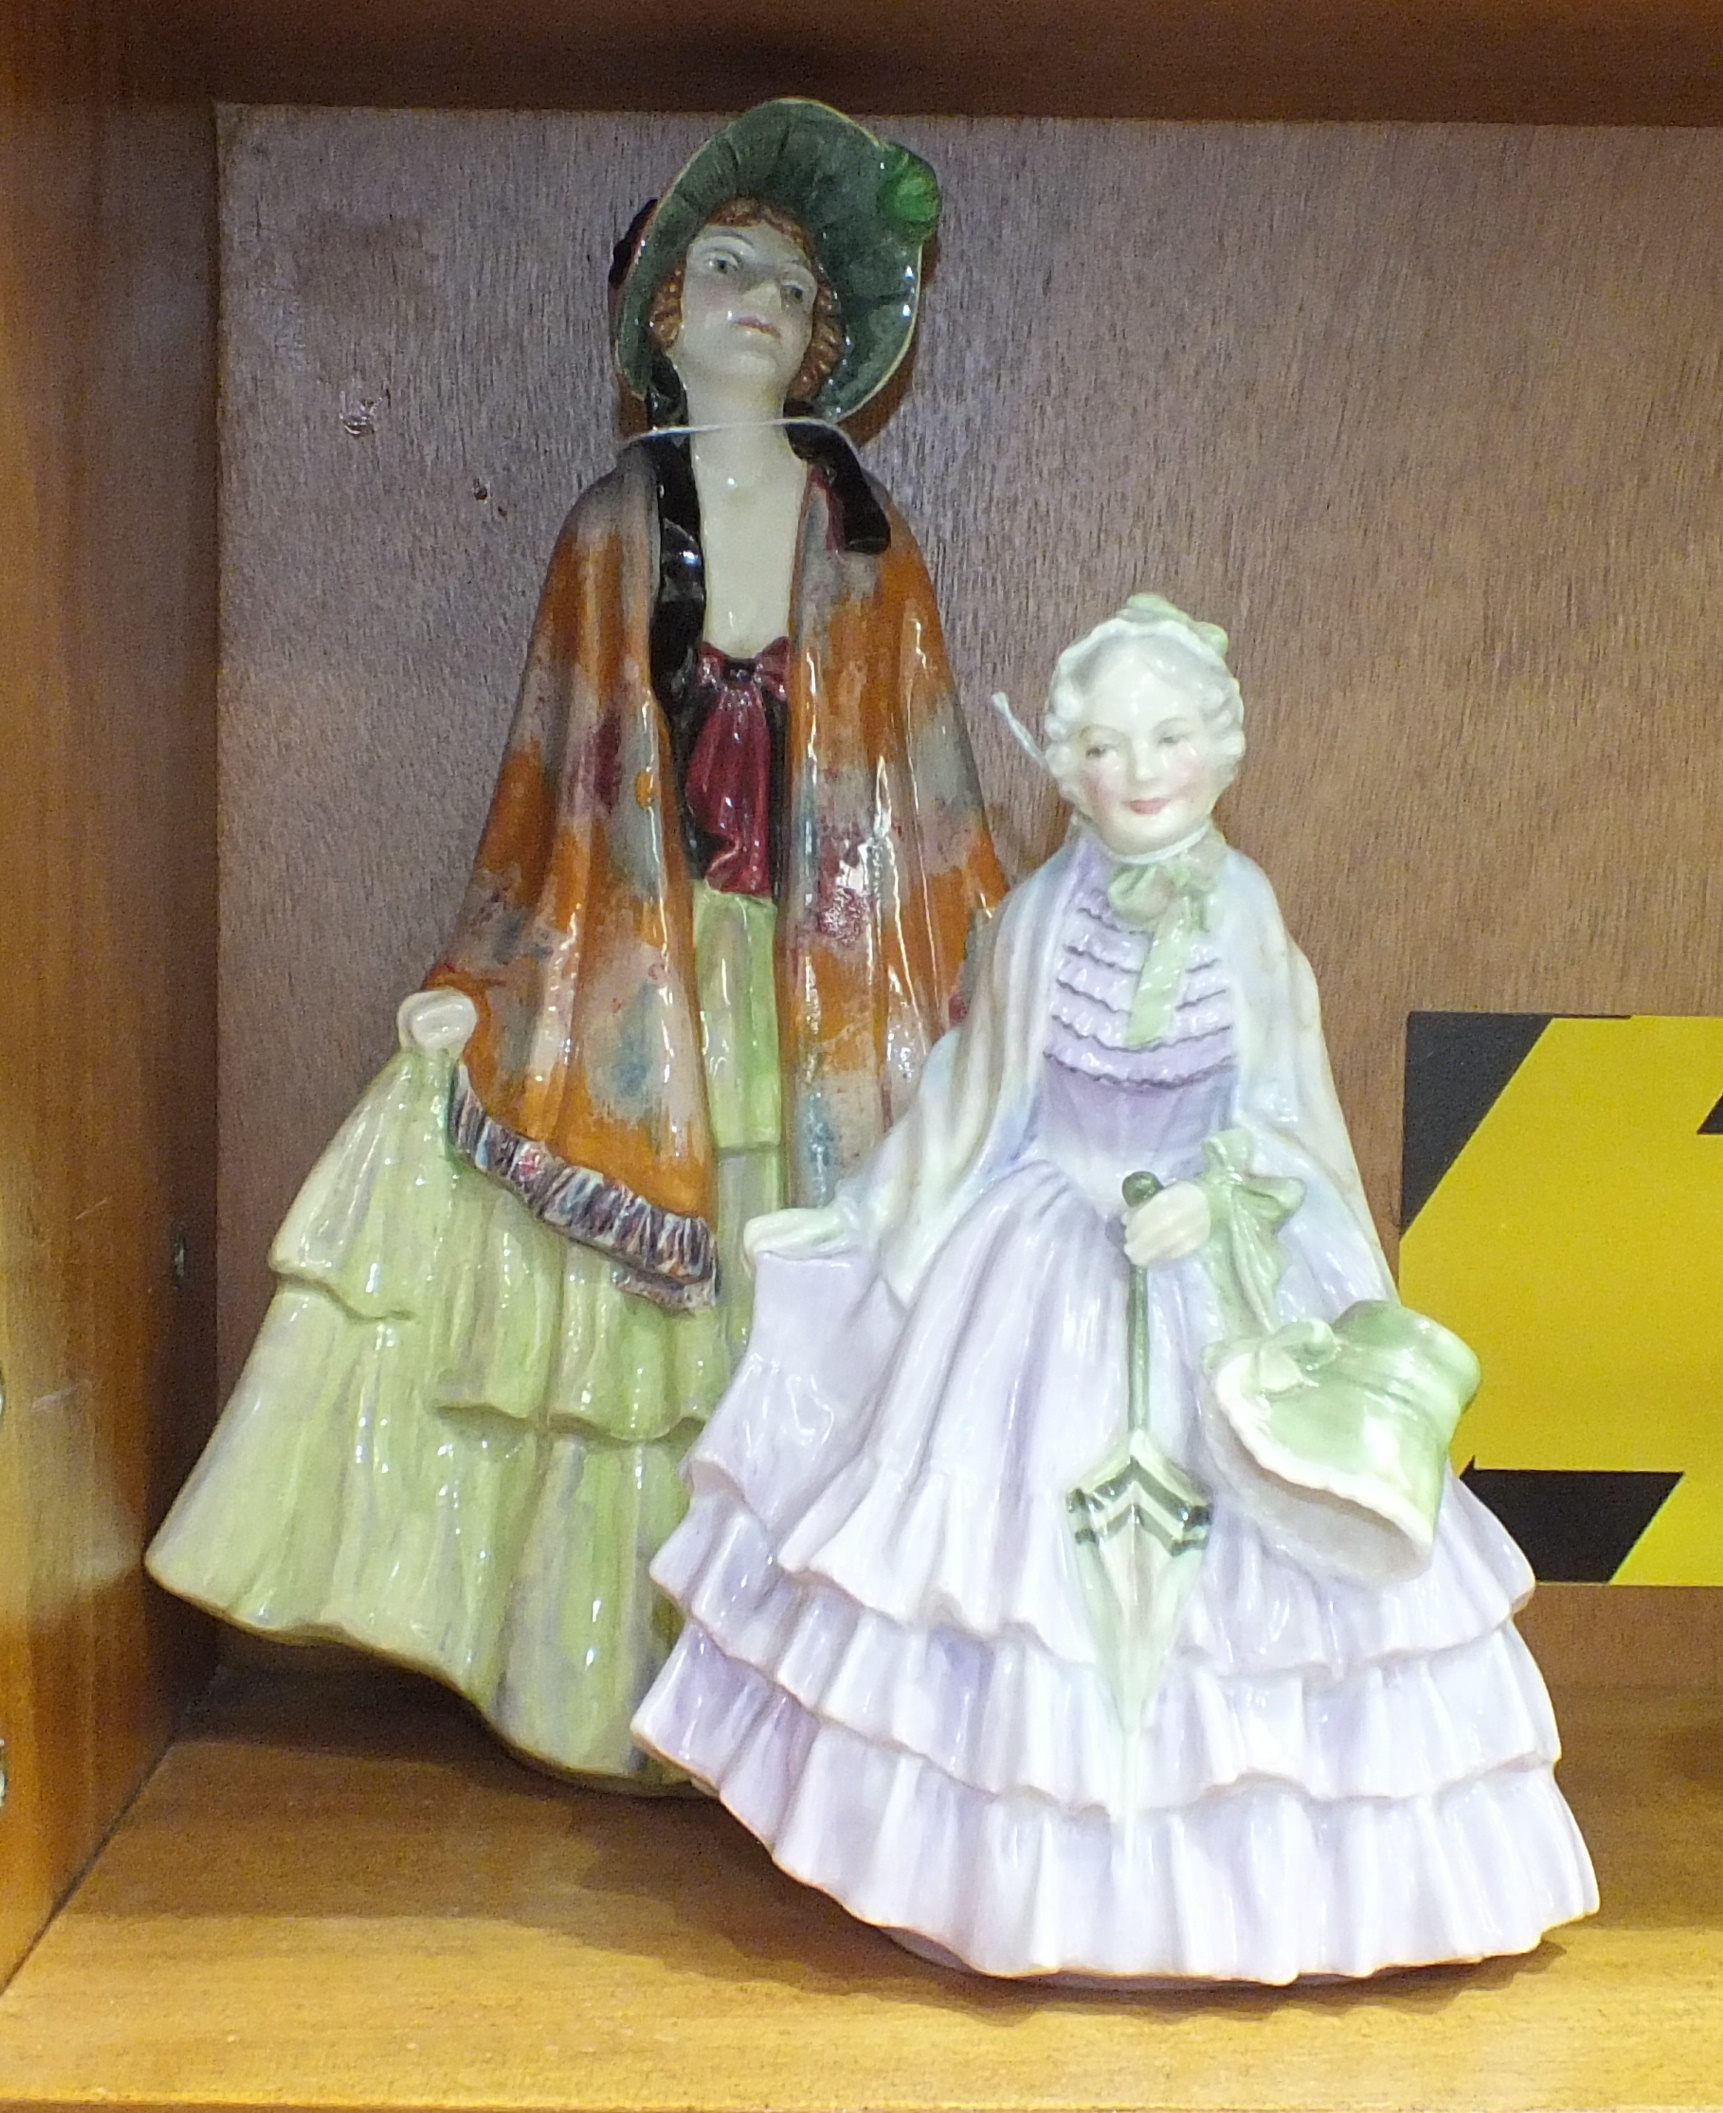 A Royal Doulton figurine 'Rhoda' HN1573, 26.5cm high and another 'Gentlewoman' HN1632, 19cm high, (